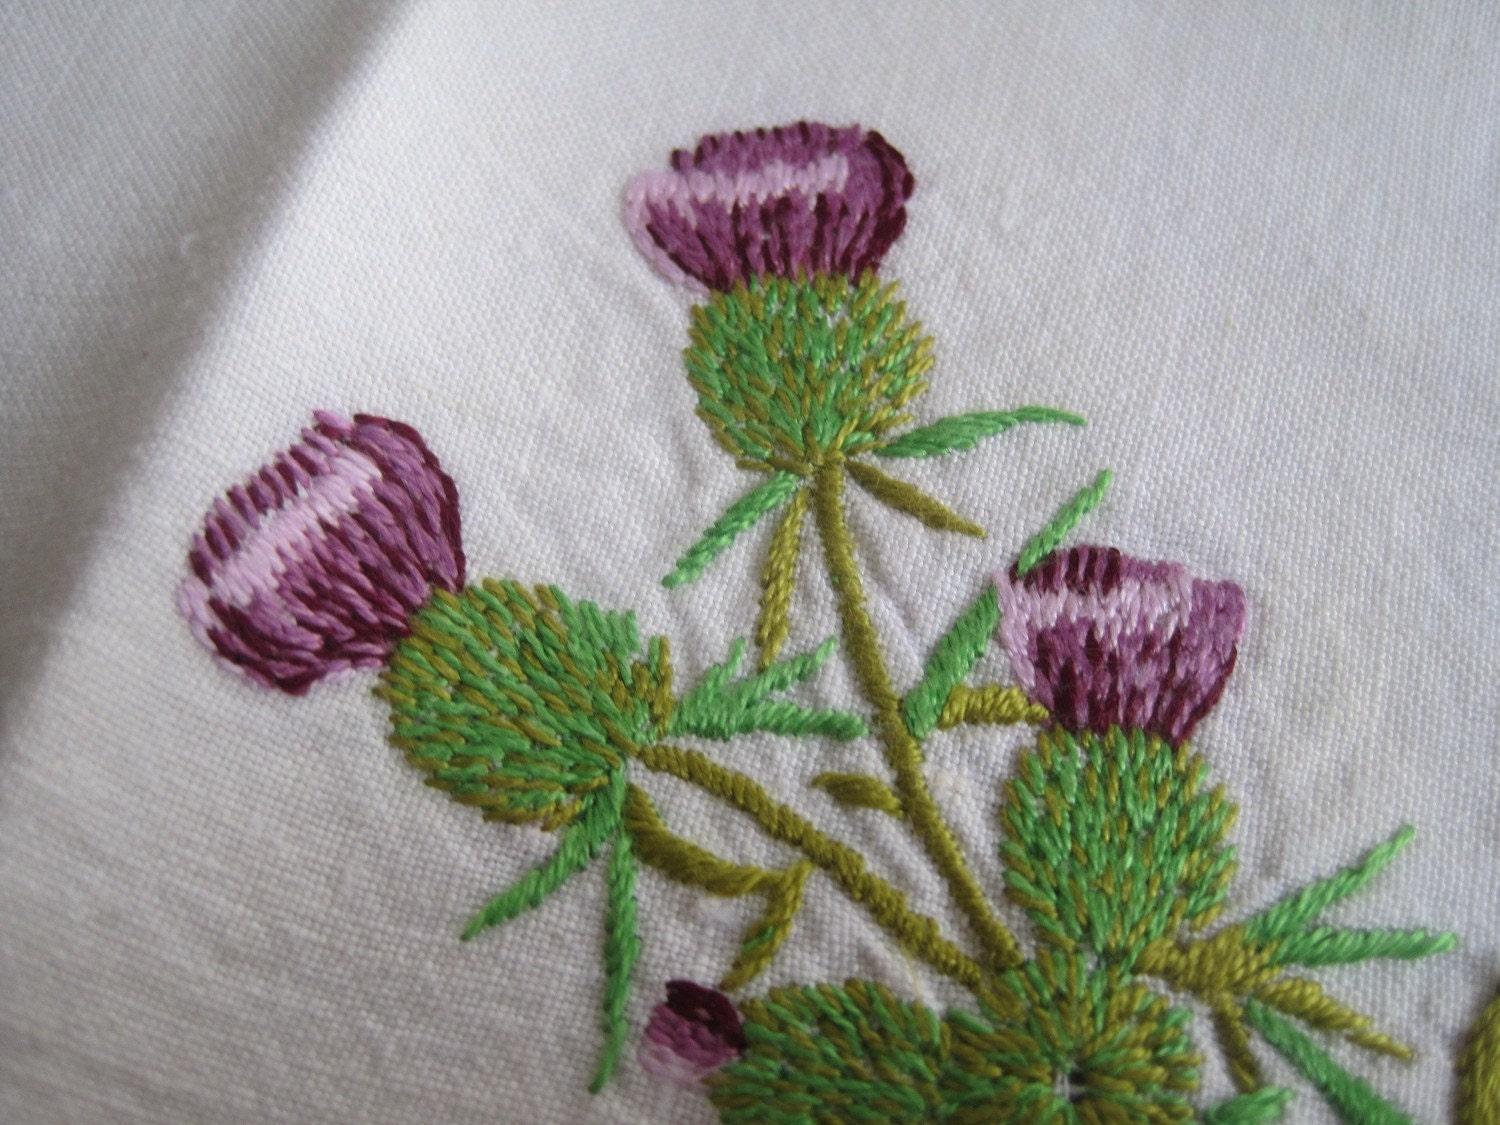 Embroidery tea towels embroidery designs - Free embroidery designs for kitchen towels ...